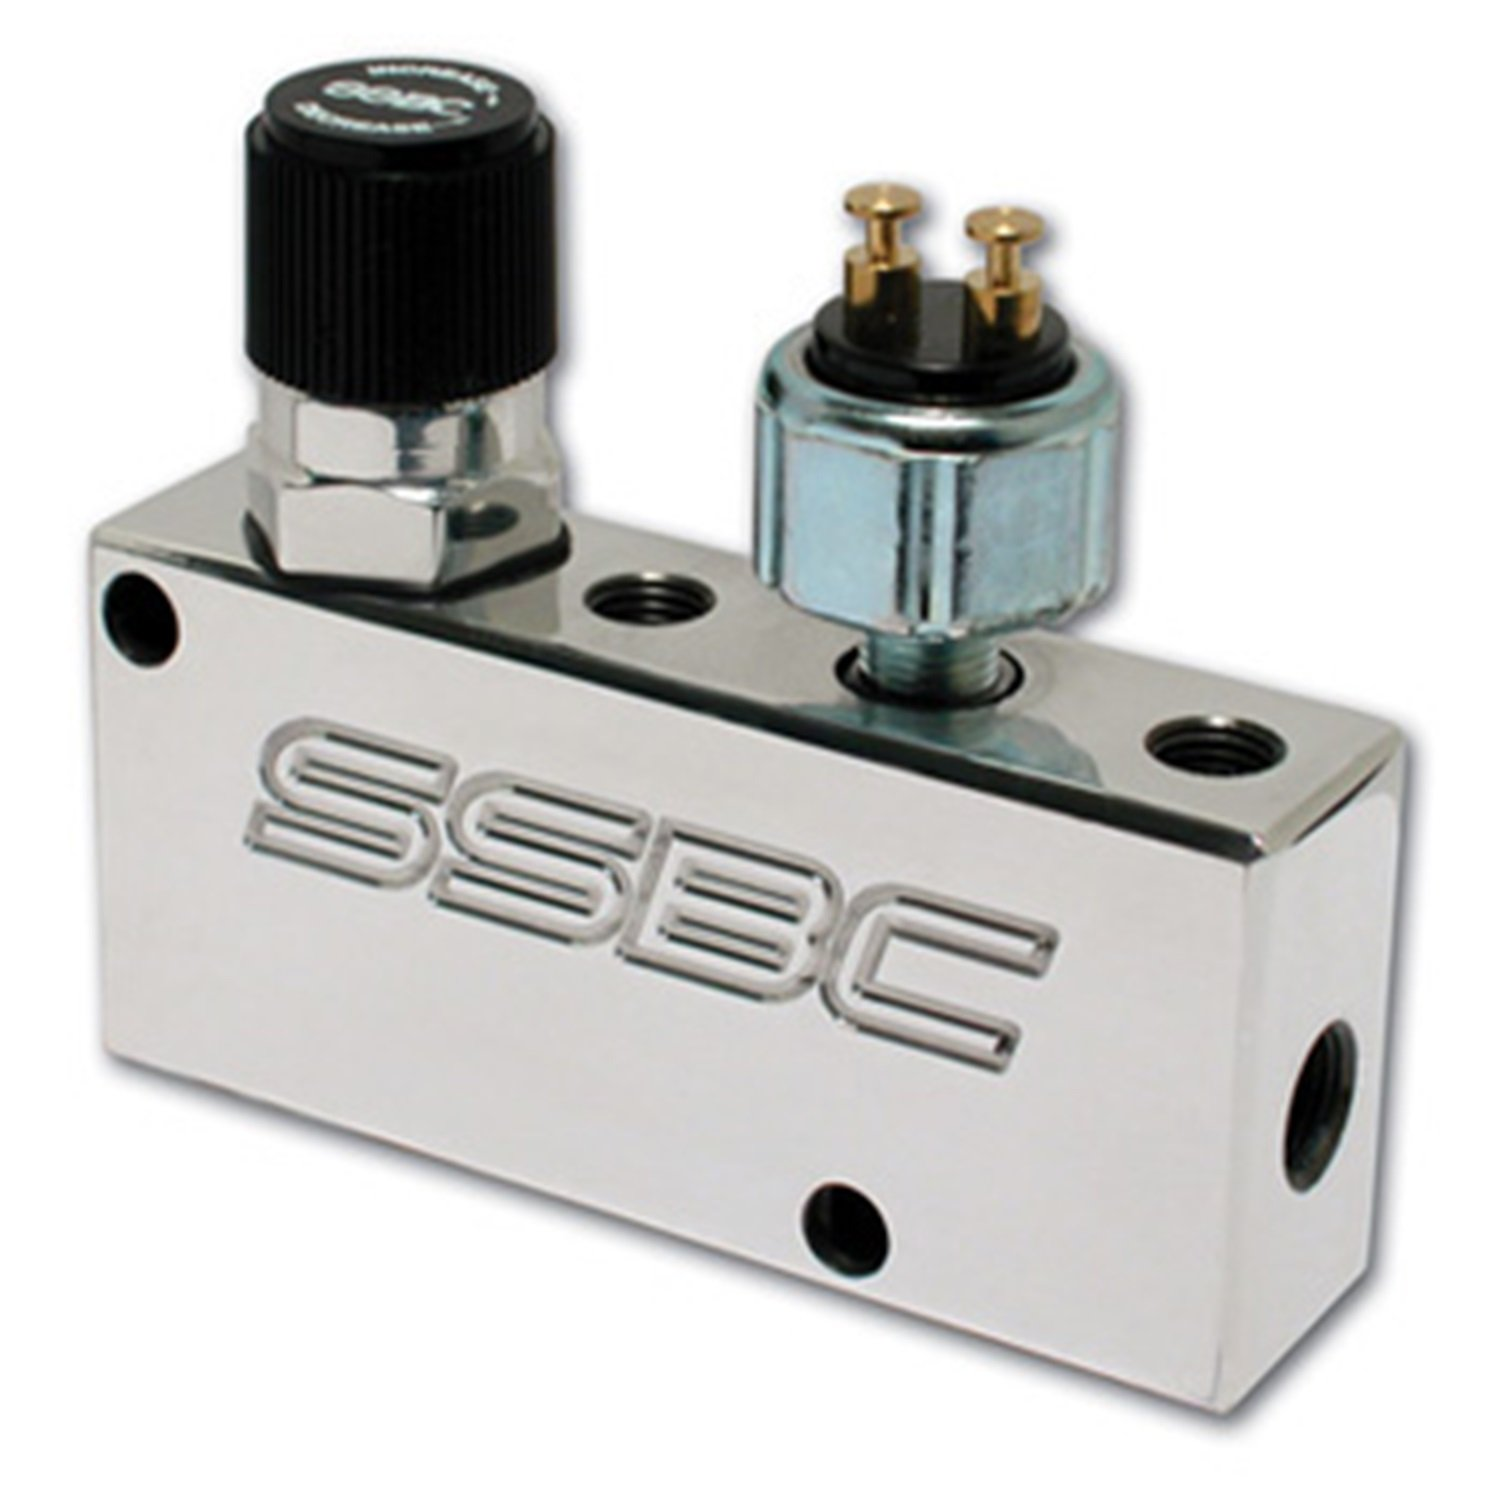 SSBC A0730P Polished Finish Adjustable Proportioning Valve and Distribution Block by SSBC